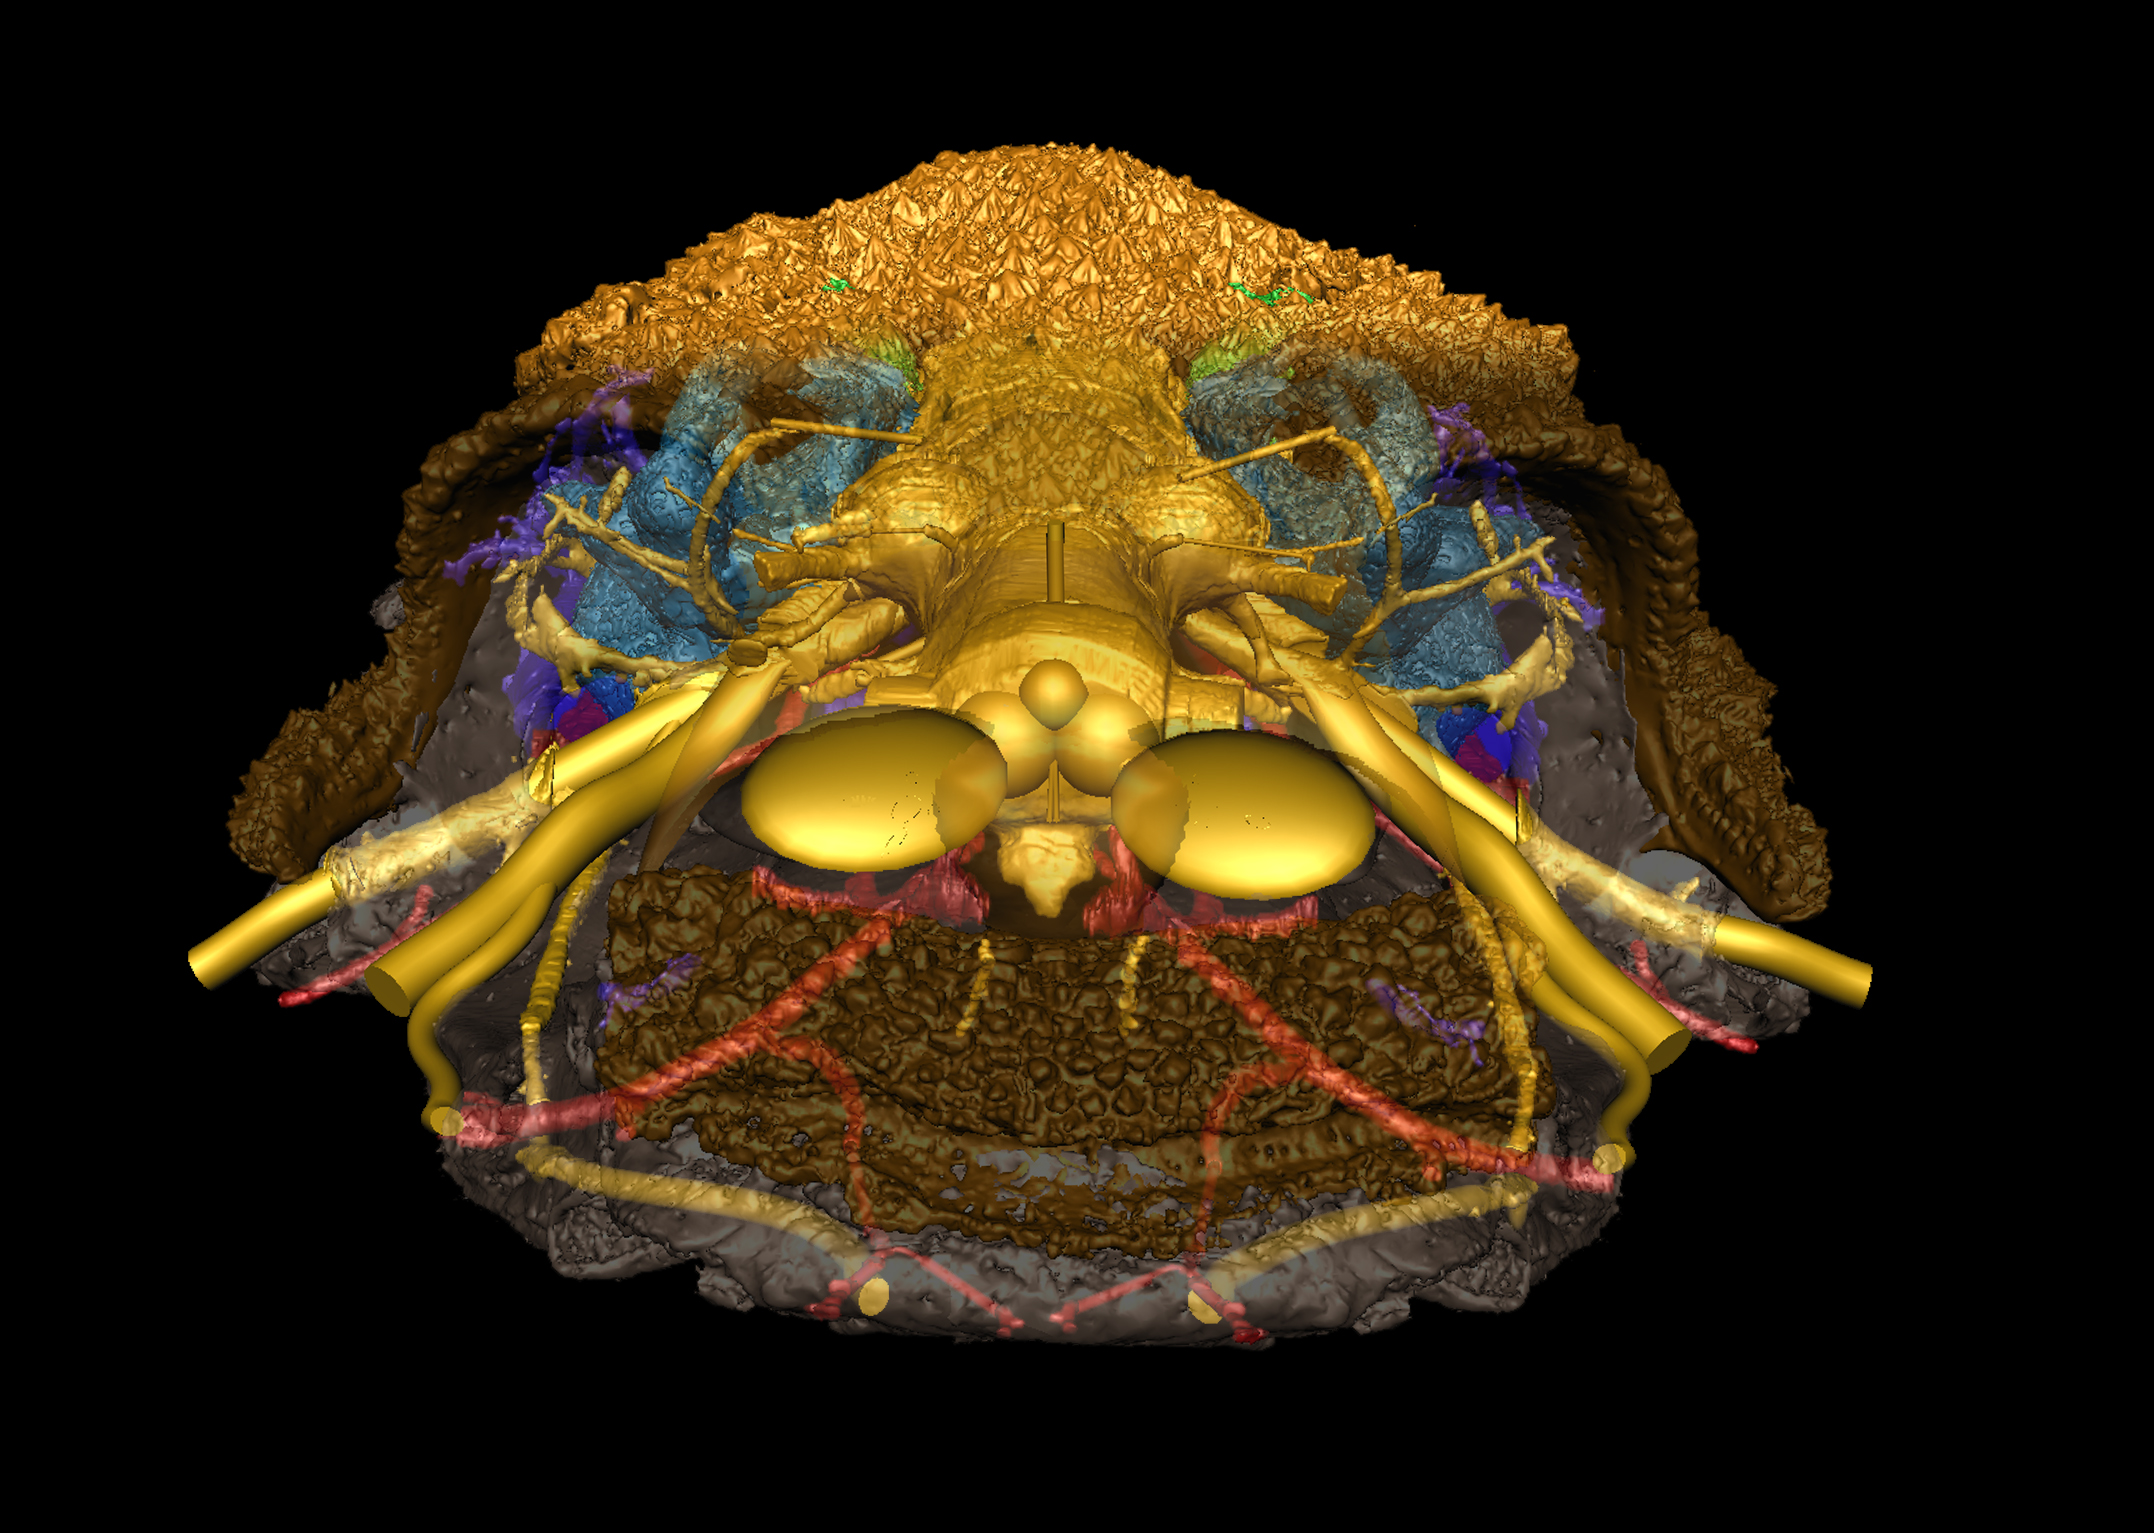 Skull With Jaw Dropped: Fossil Fish Offers Clues To Jawed Vertebrates Origins